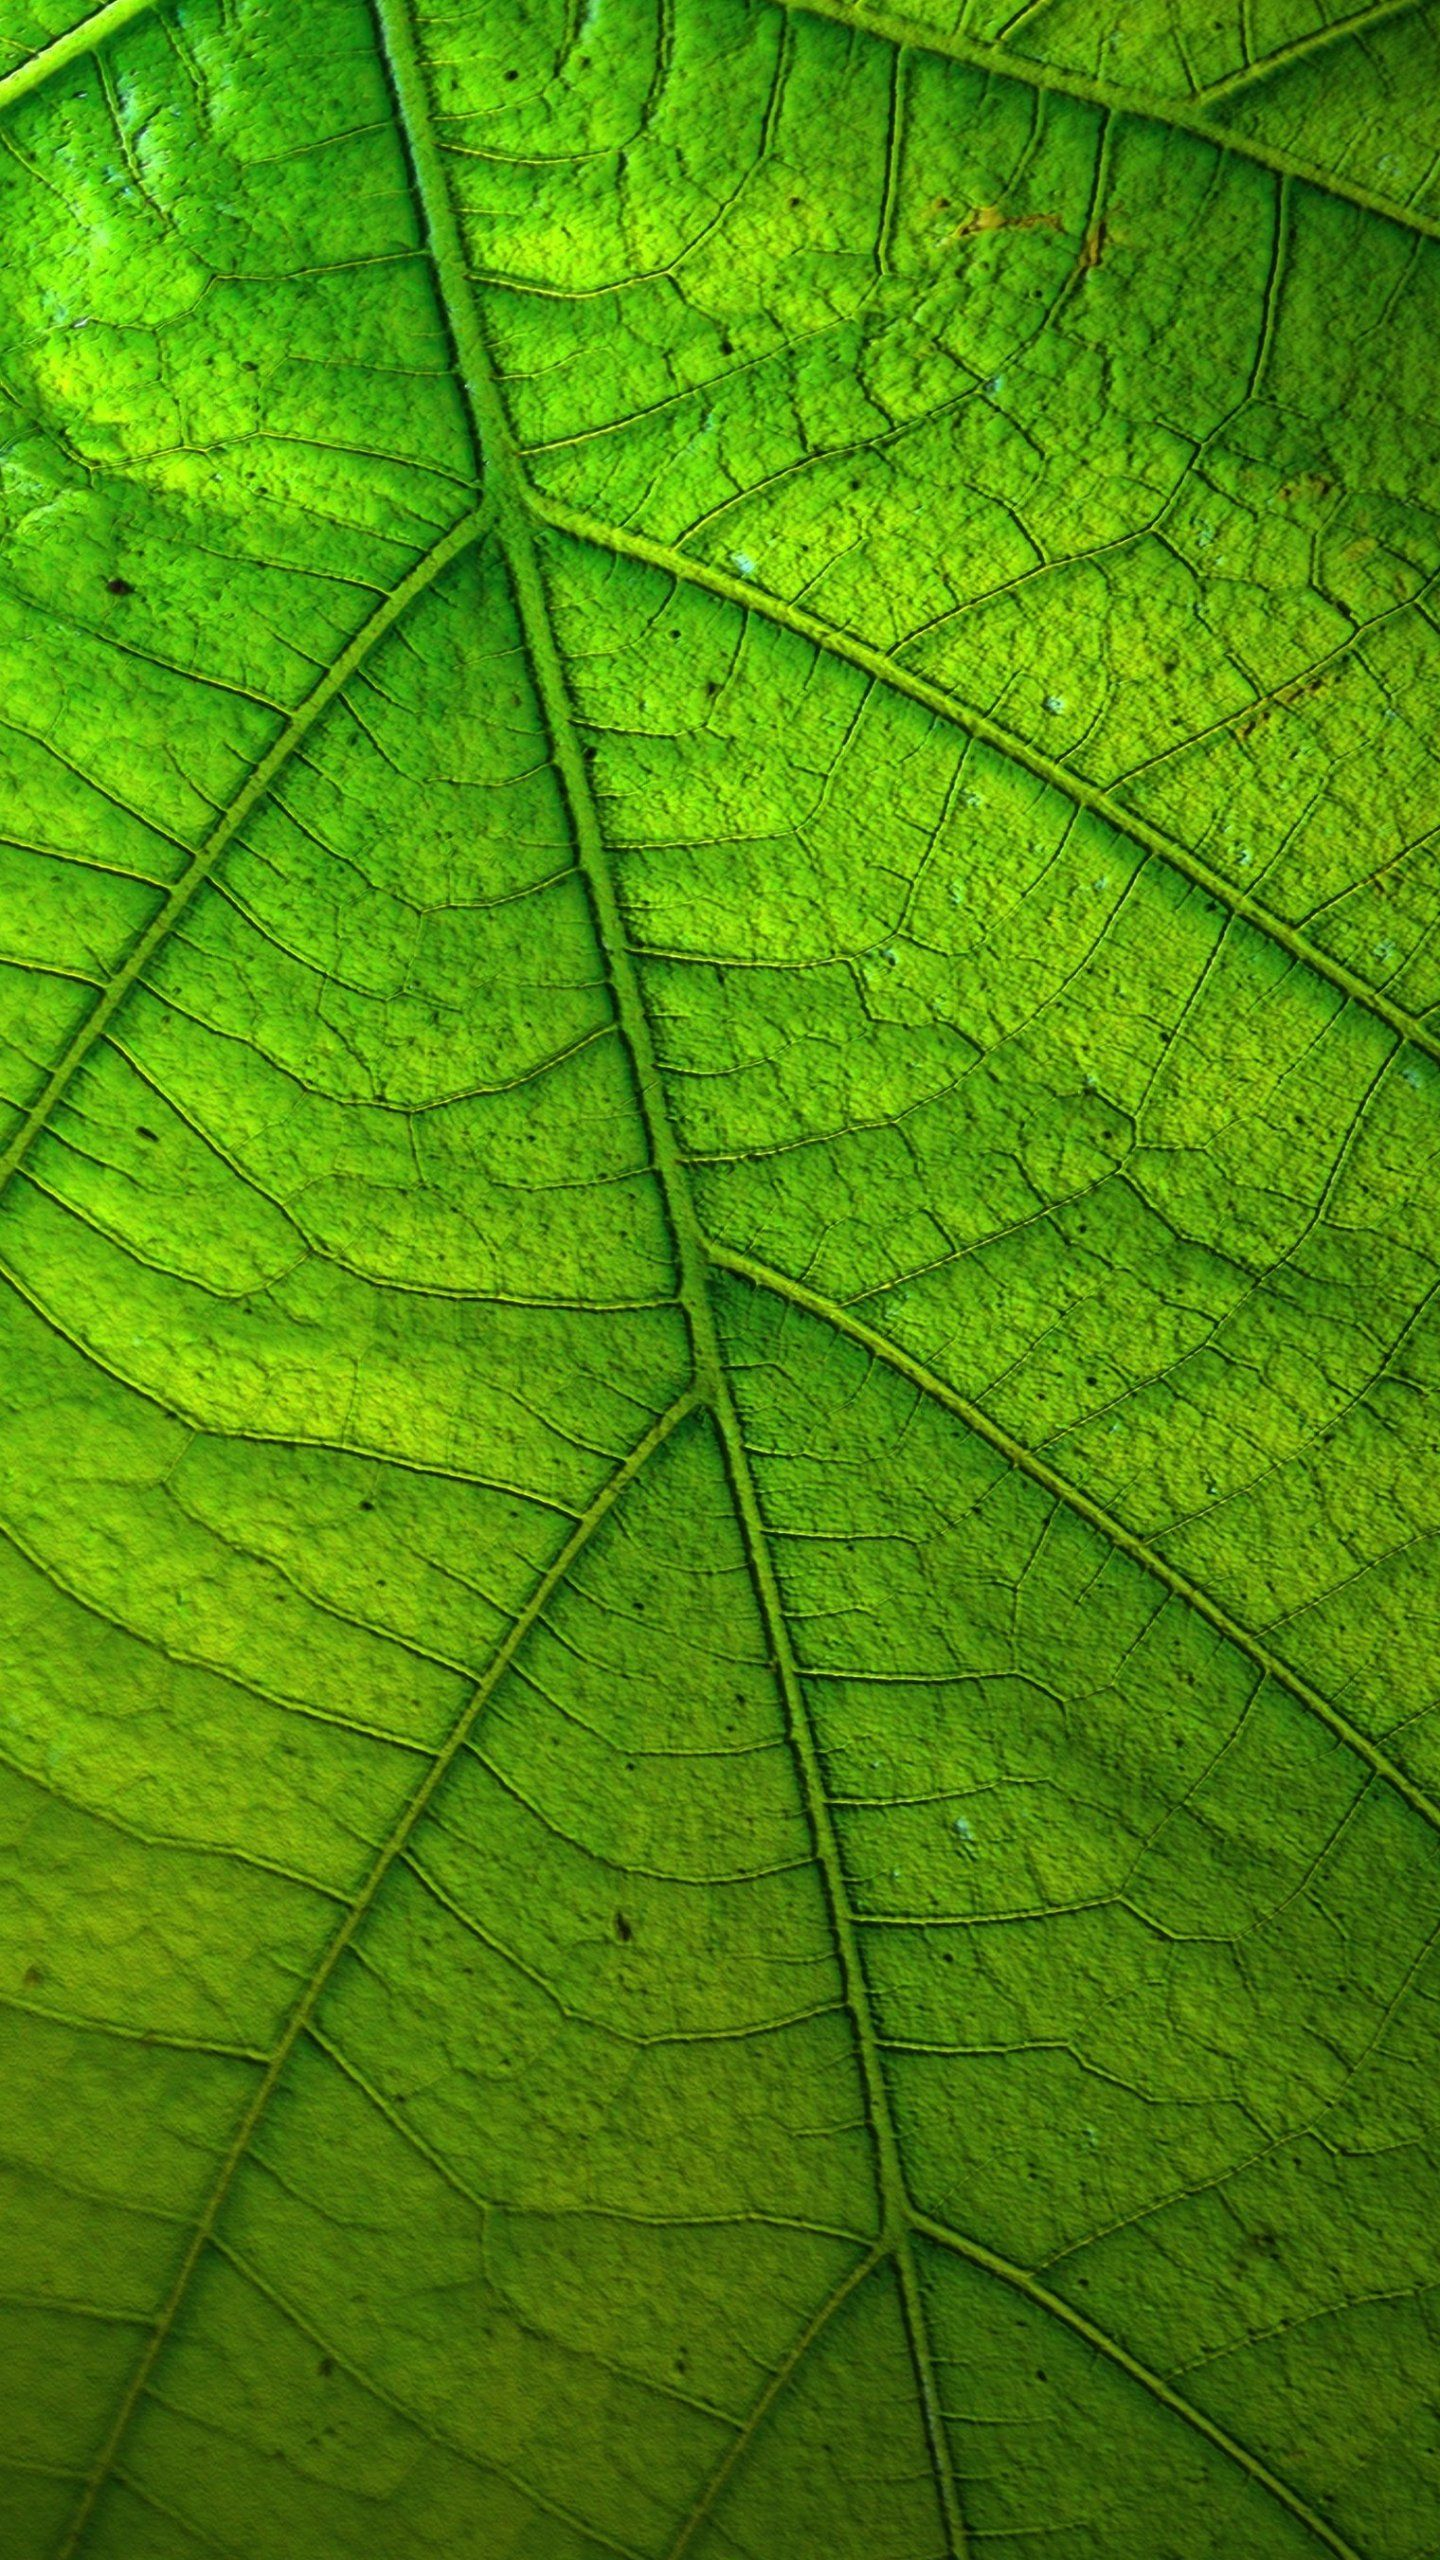 Green Leaf Wallpaper - Fondos de iPhone, Android y de escritorio